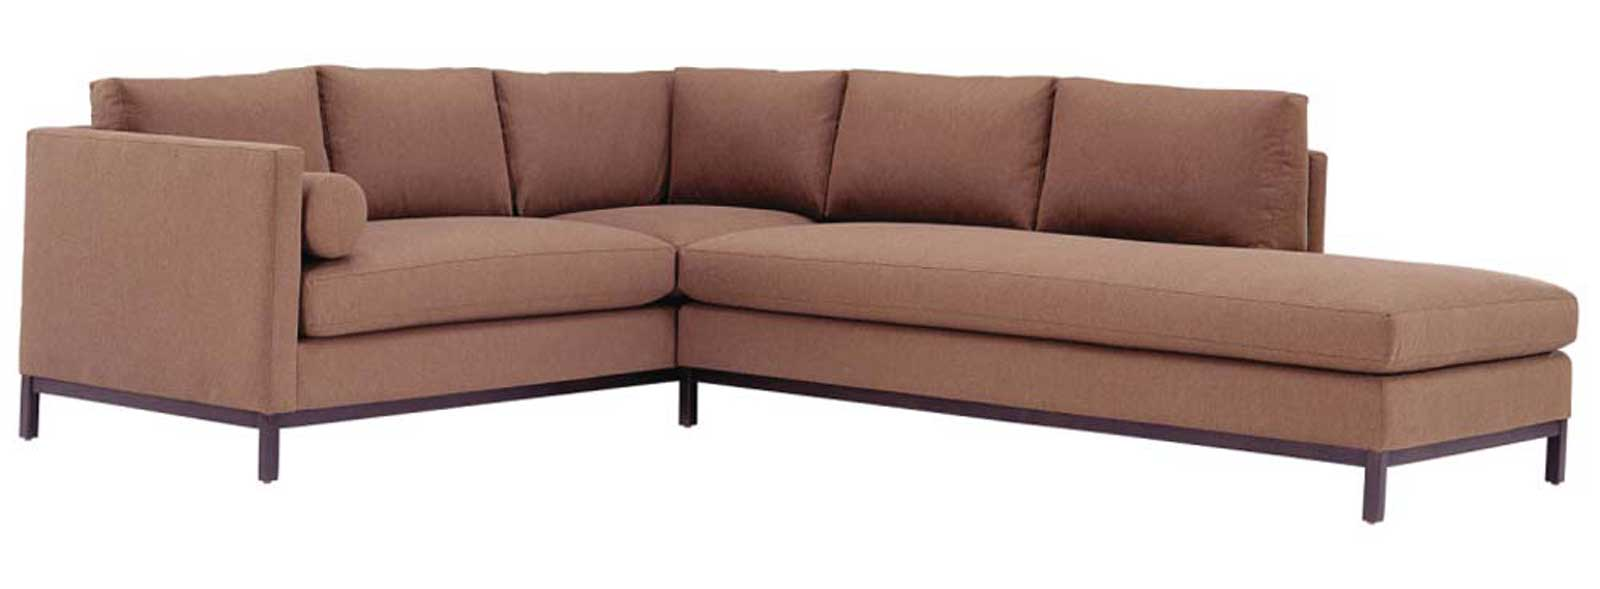 Wood Frame Designer Classic Sectional Sofa